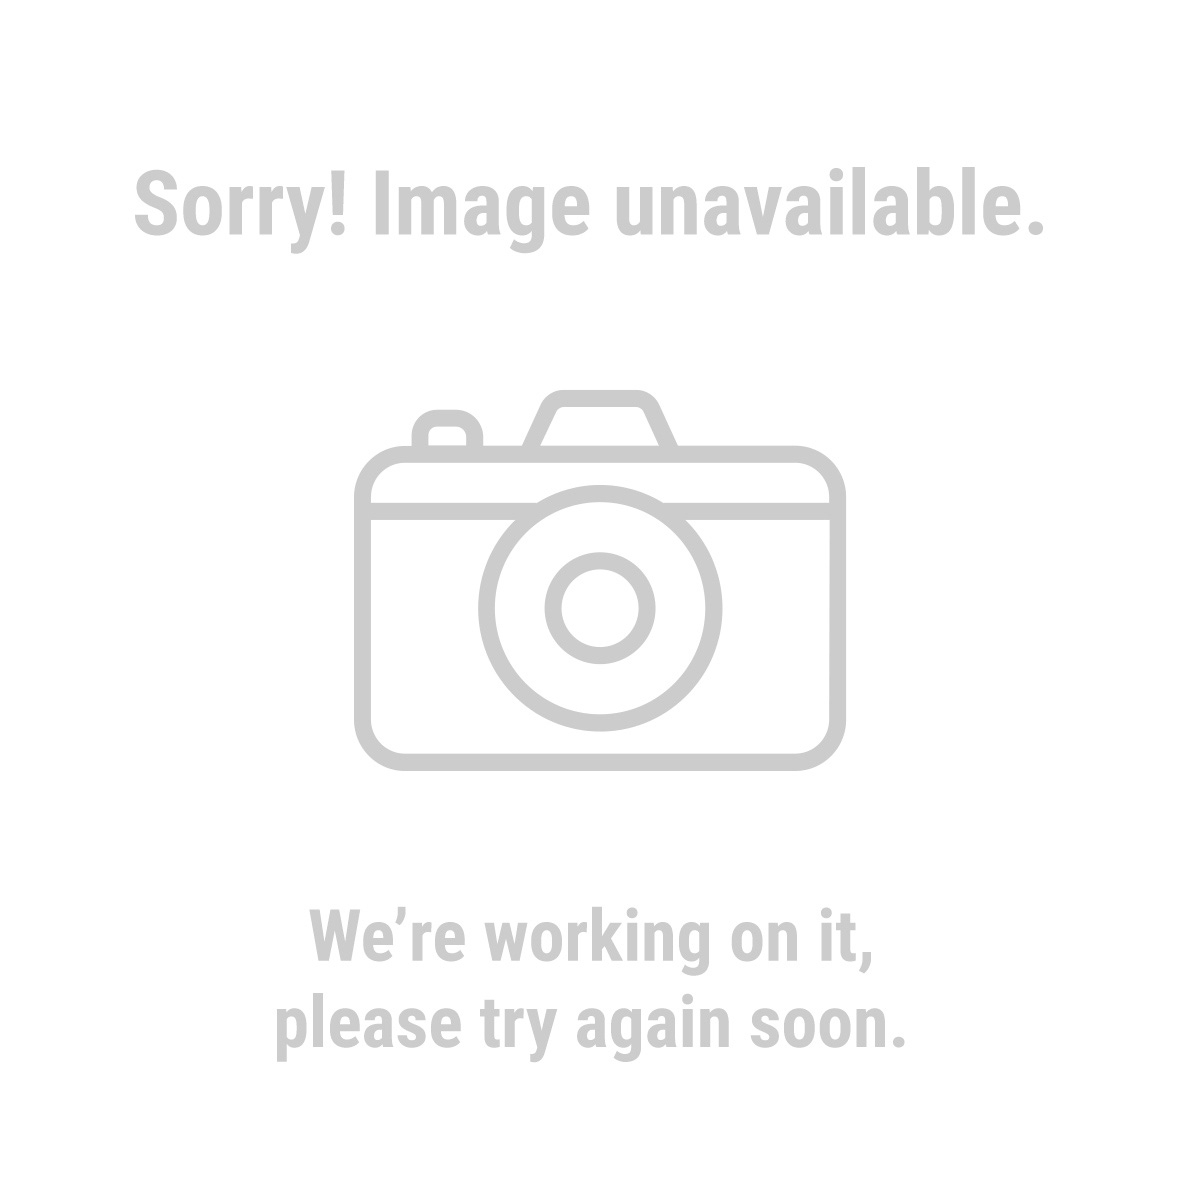 Central-Machinery 43378 Heavy Duty 16 Speed Floor Drill Press